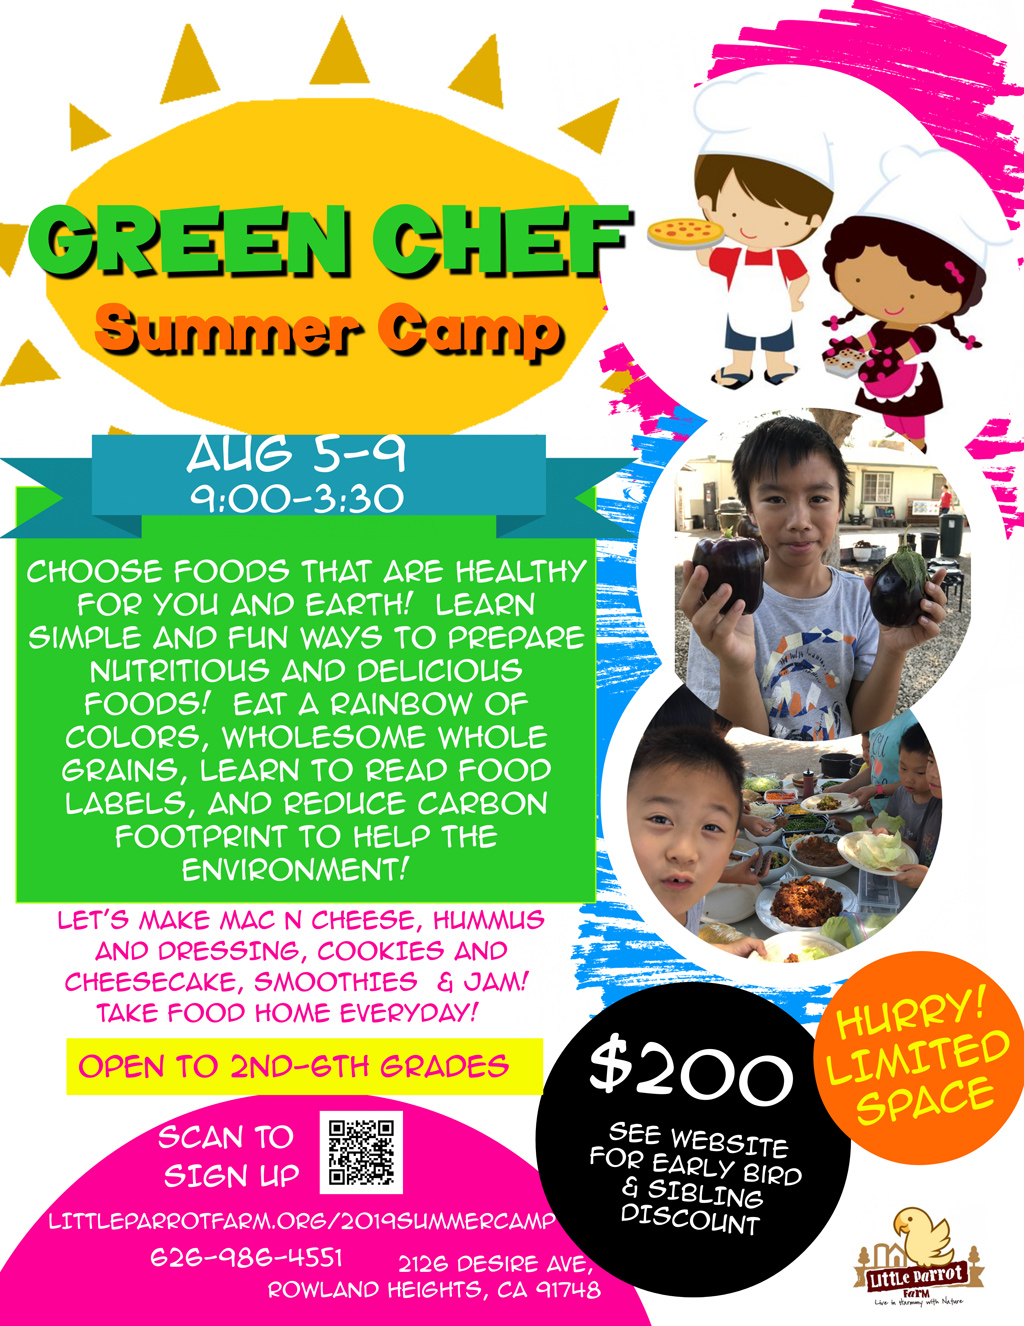 2019 Summer Camp-Green Chef 0805-0809